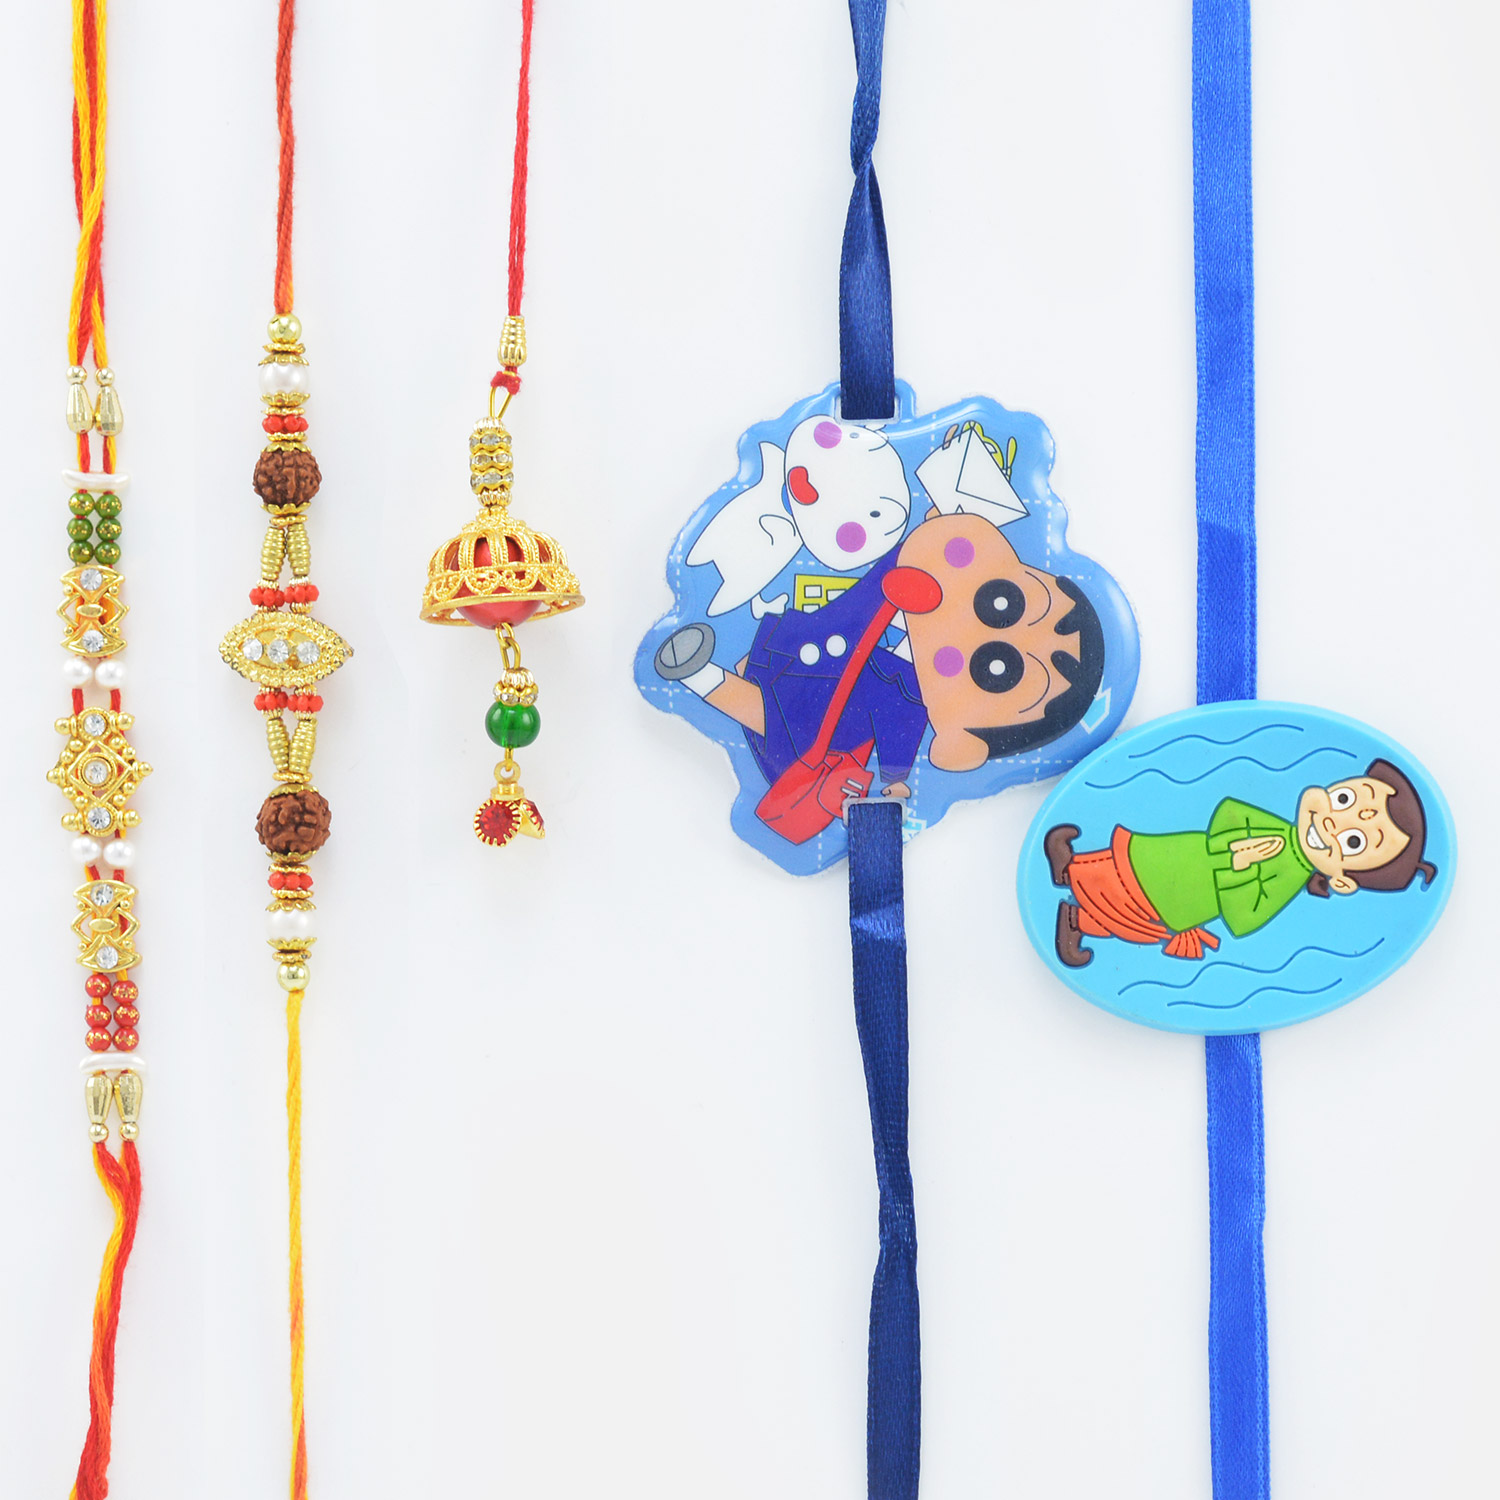 2 Brothers Rakhi with 1 Lumba and 2 Shinchain and Bheem Kid Rakhis